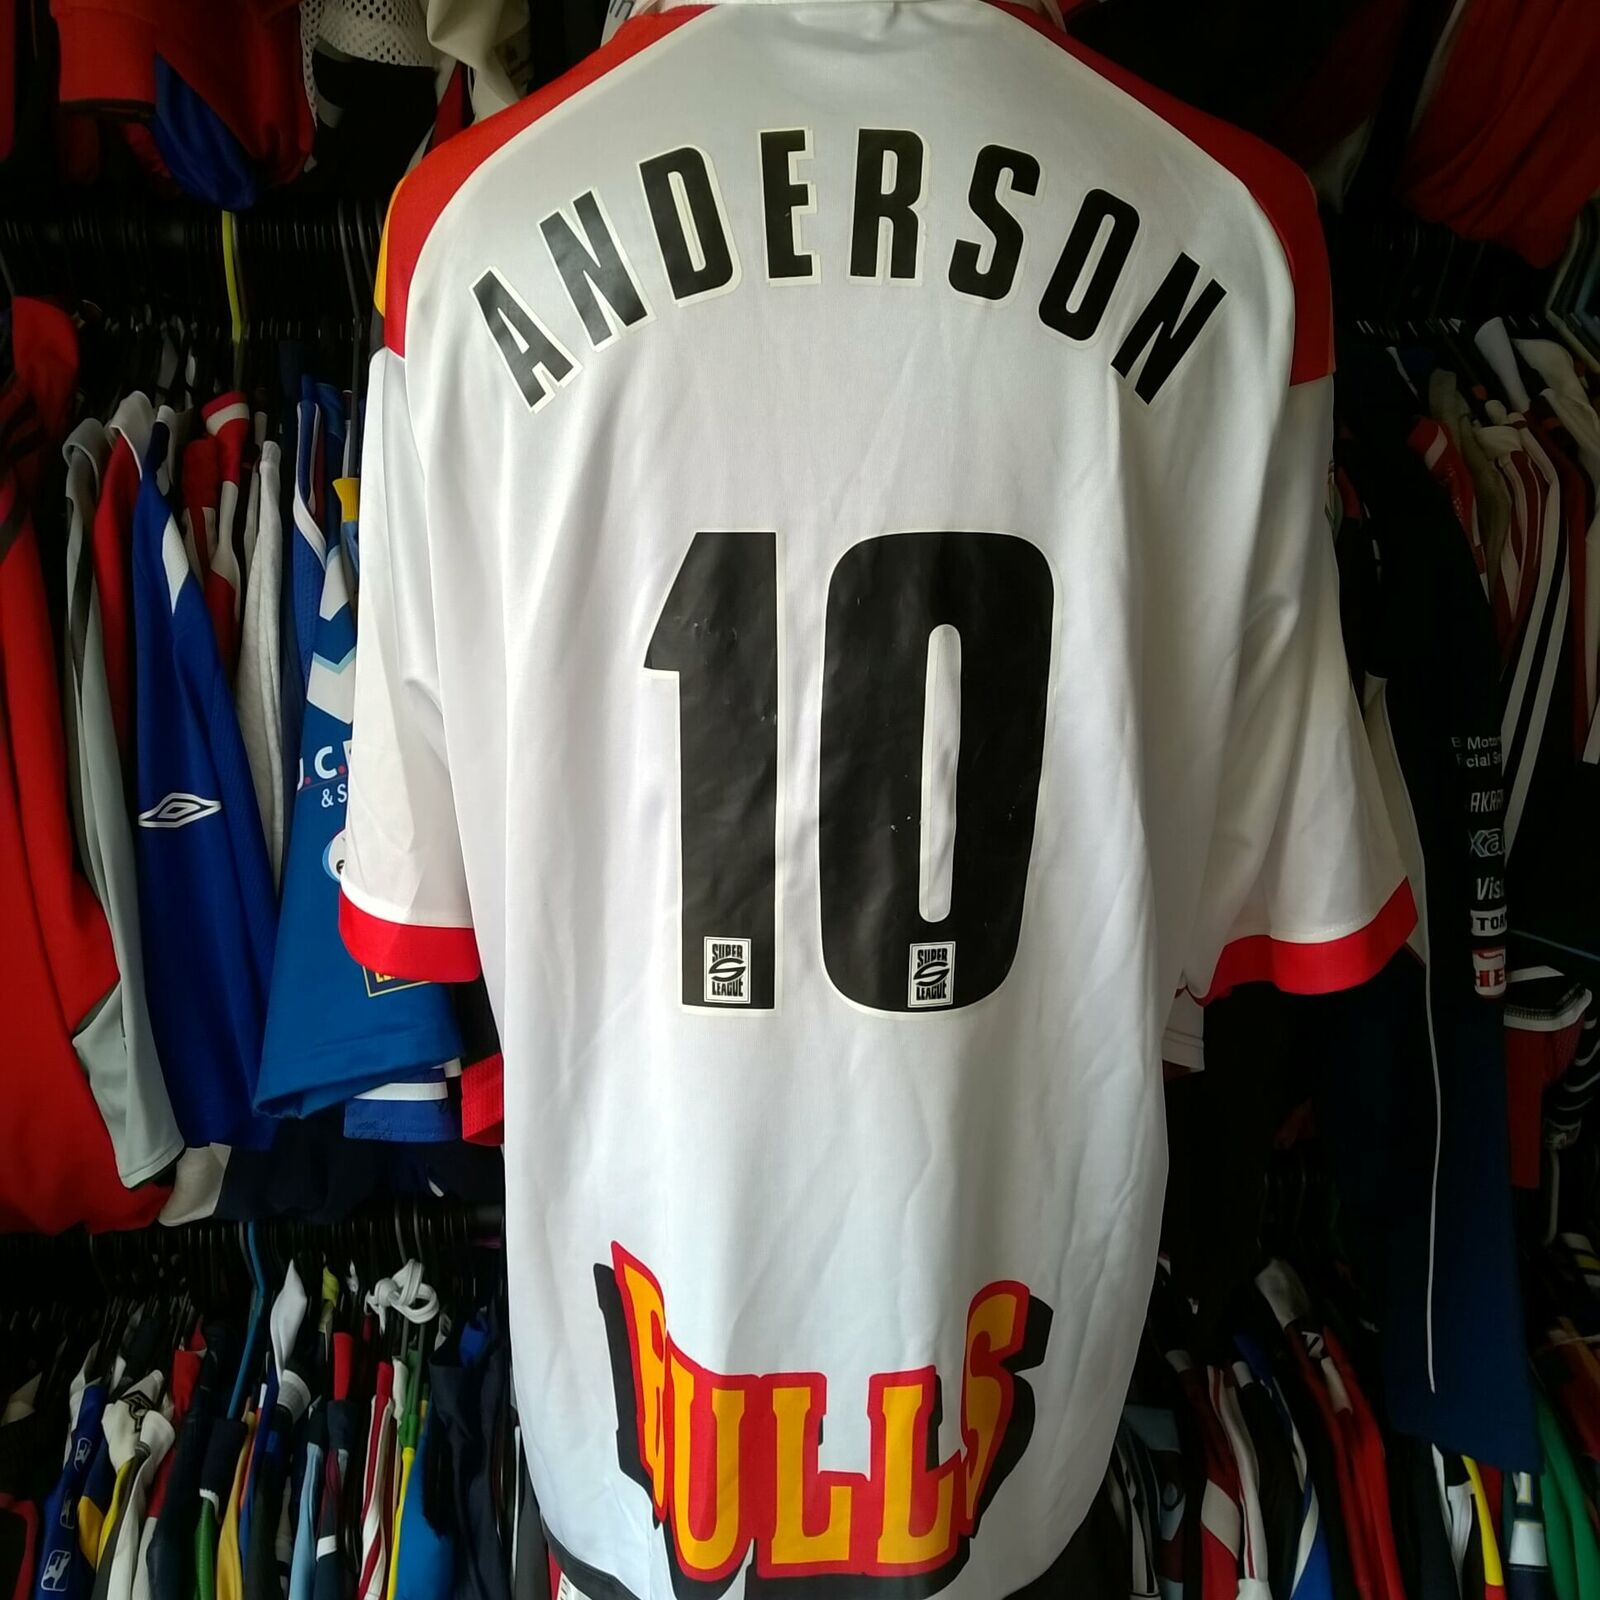 BRADFORD BULLS 2001 LEAGUE RUGBY SHIRT PLAYER ISSUE ANDERSON SIZE ADULT 2XL